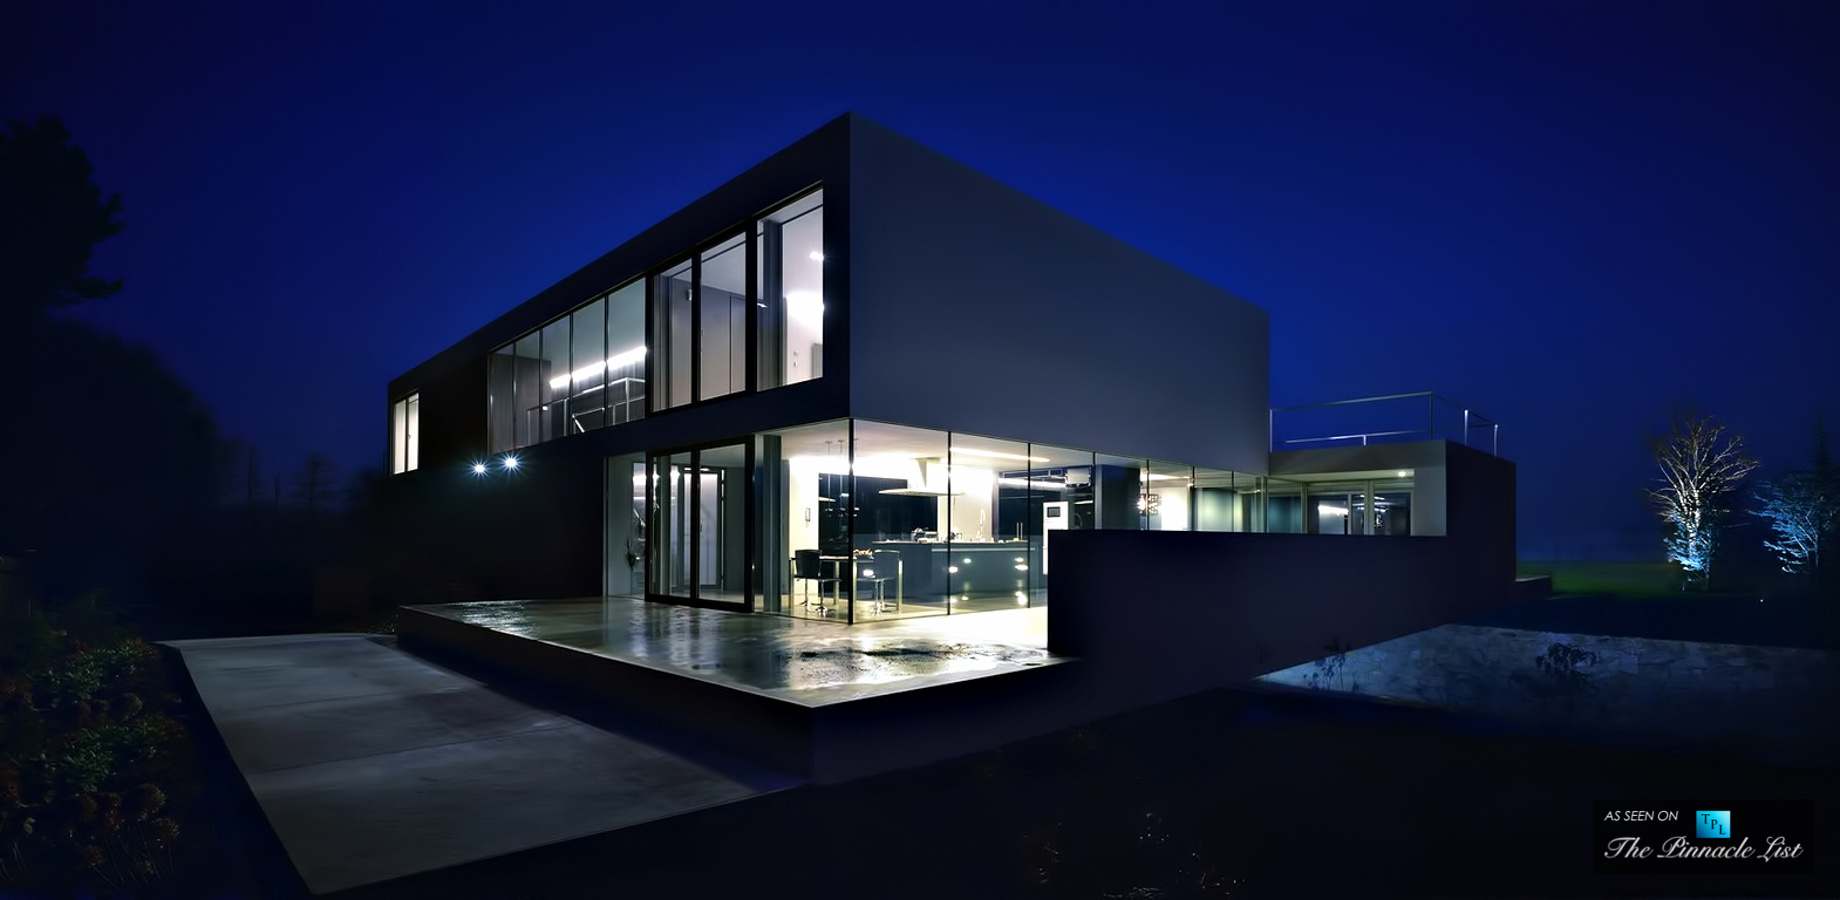 Concrete Cube Design with Minimalistic Expressions at the Aatrial House in Poland